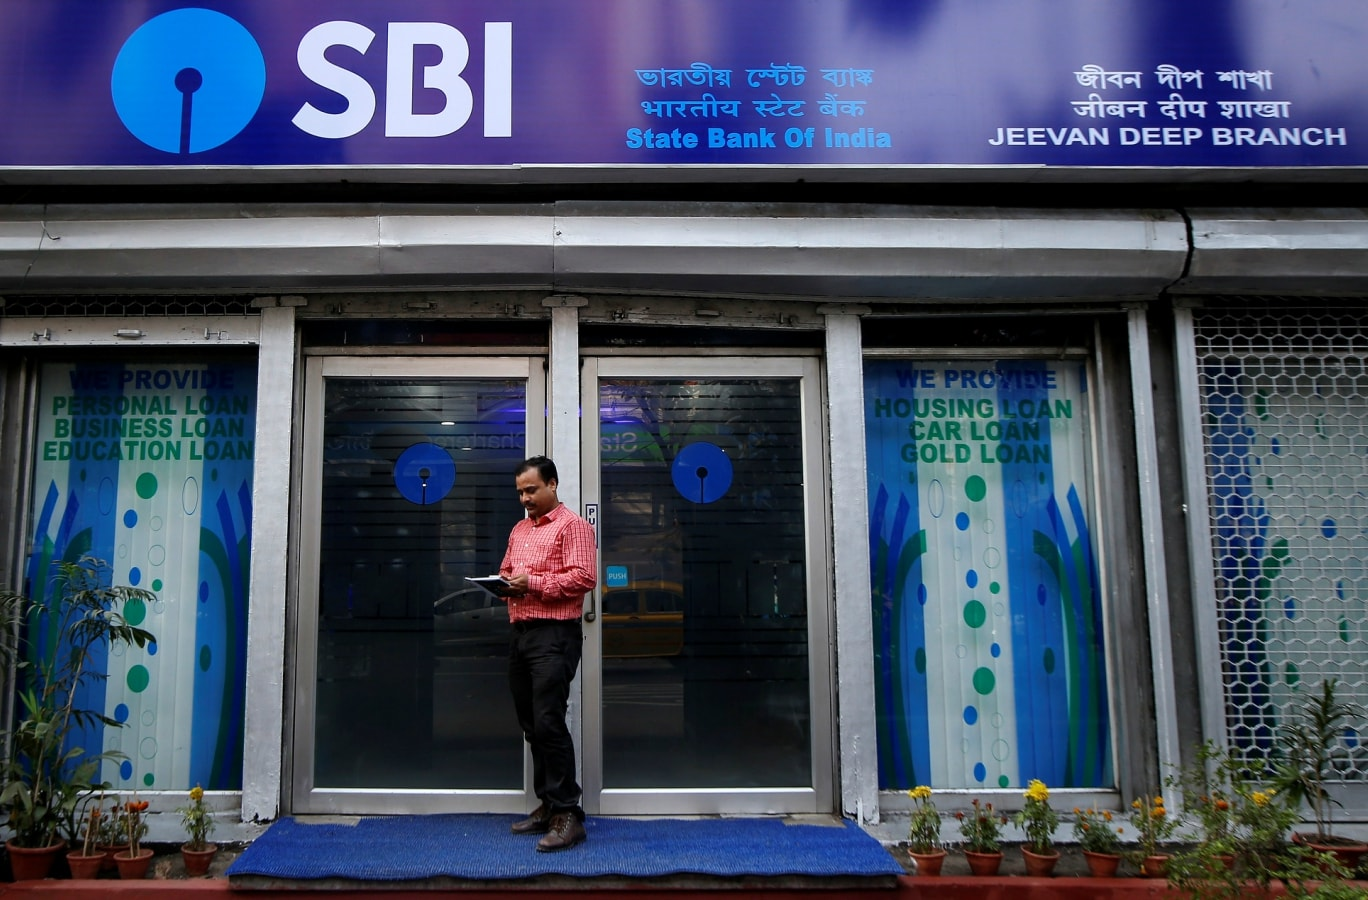 State Bank of India: Better asset quality and a 100 bps dip in credit cost helped the largest lender report a net income of Rs 838 crore for the March quarter as against a net loss of Rs 7,718 crore a year ago, and also guide towards sunnier days. The bank also said it is planning to list general insurance and credit card business in FY20. (Image: Reuters)